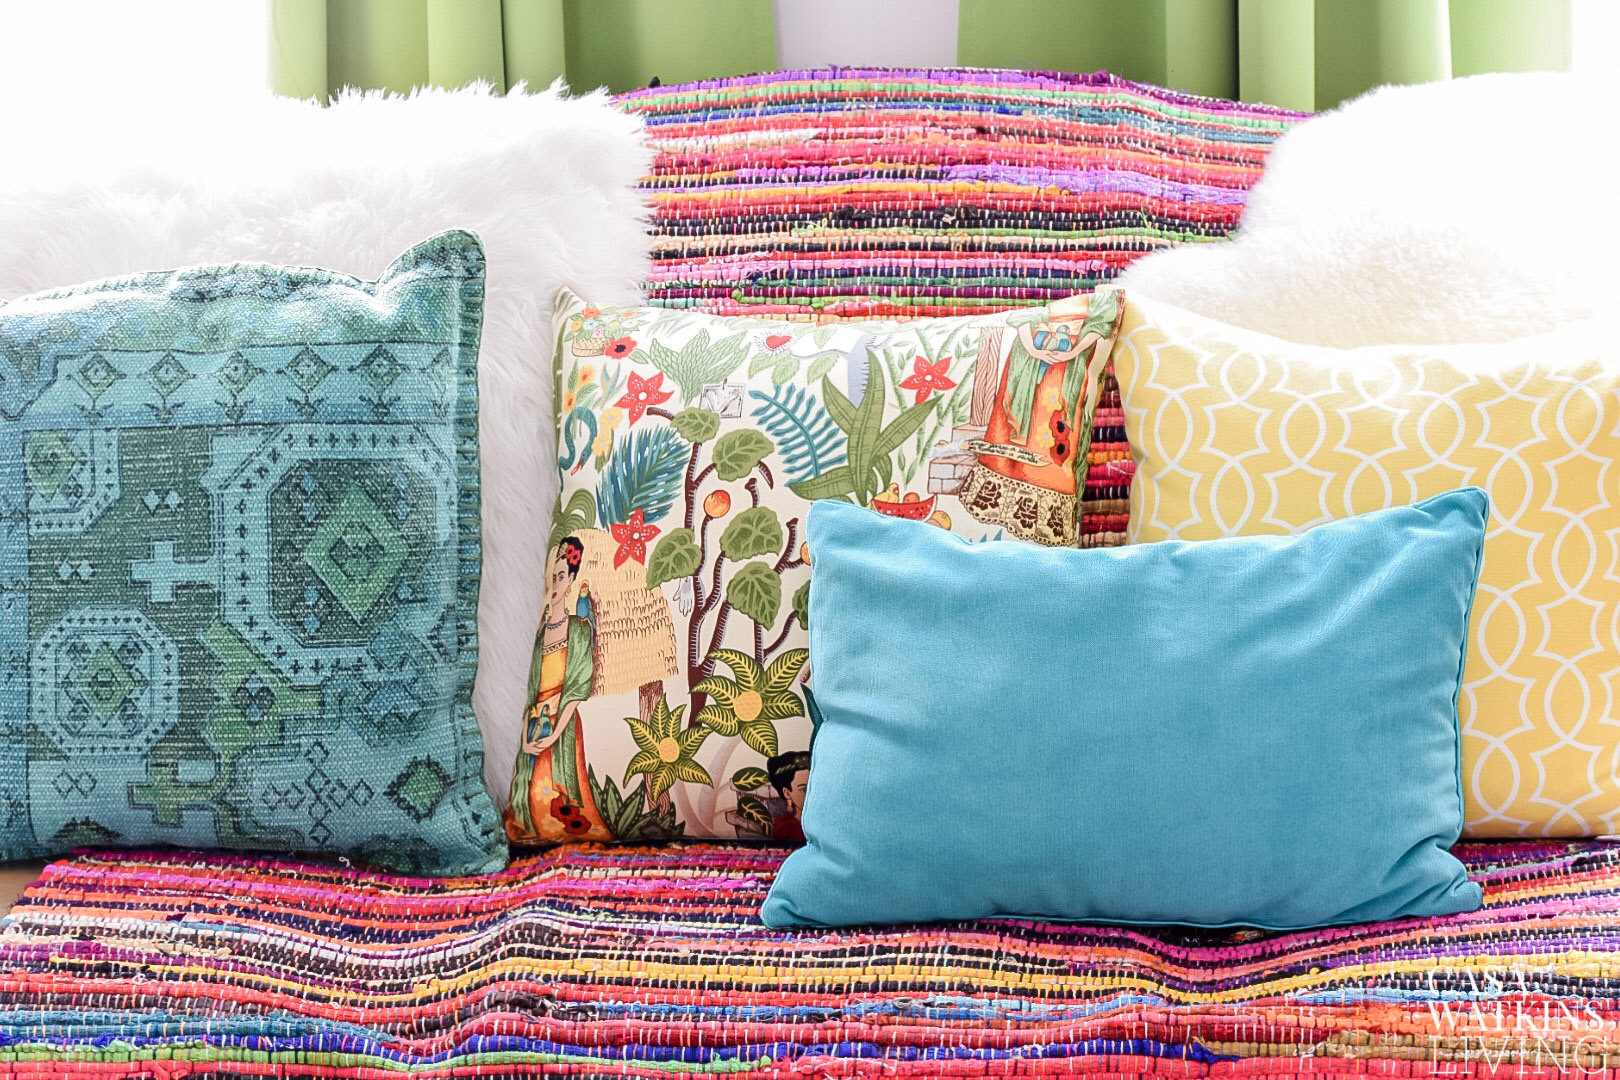 boho style rag rug used as couch cover with pillows